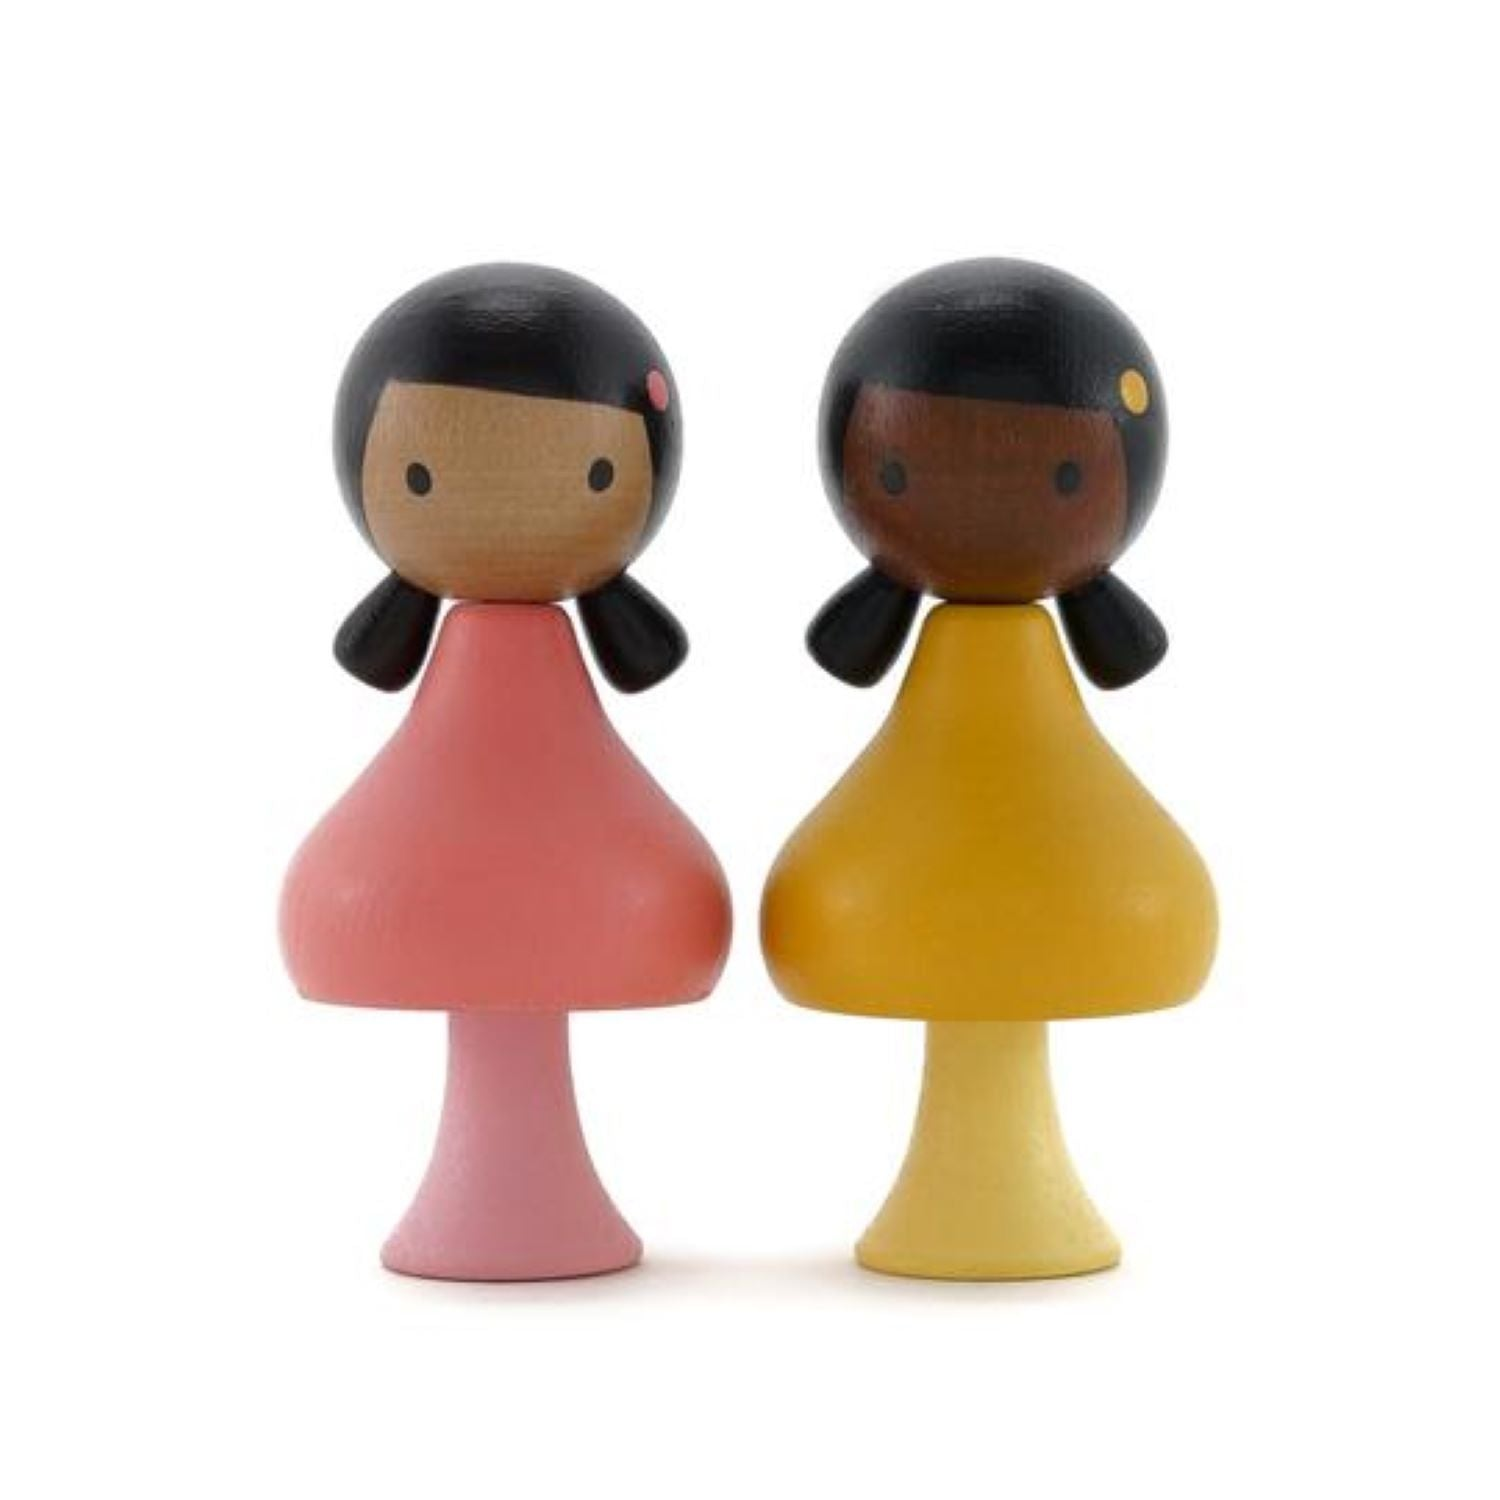 Clicques - Ruby and Coco Wooden Figurines